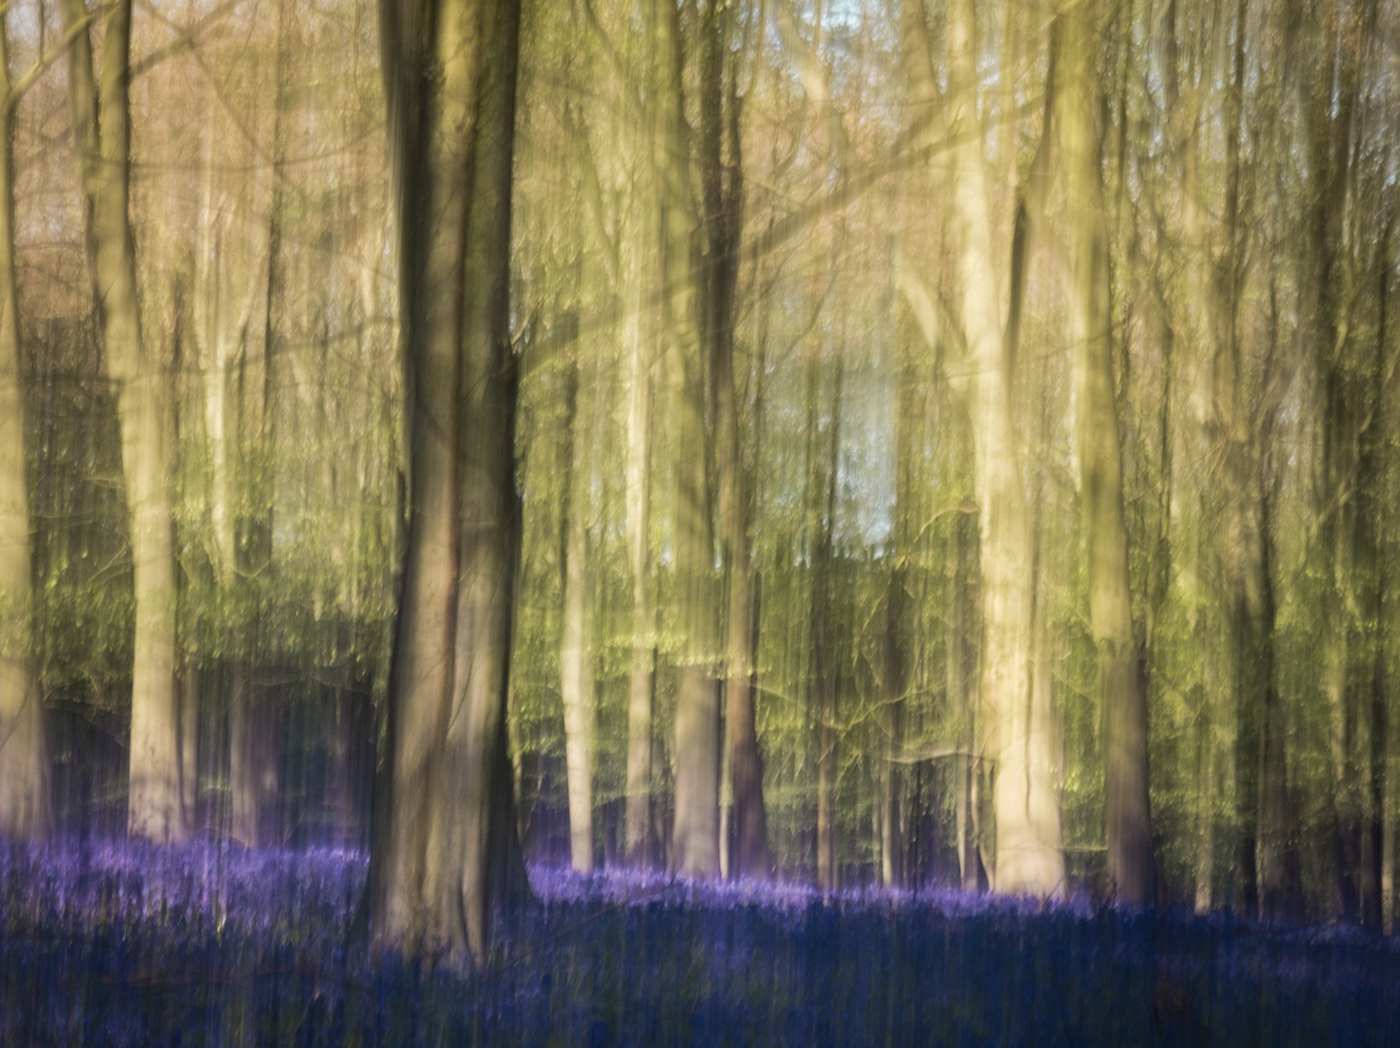 ENCHANTED WOODLAND by Jenny Monk